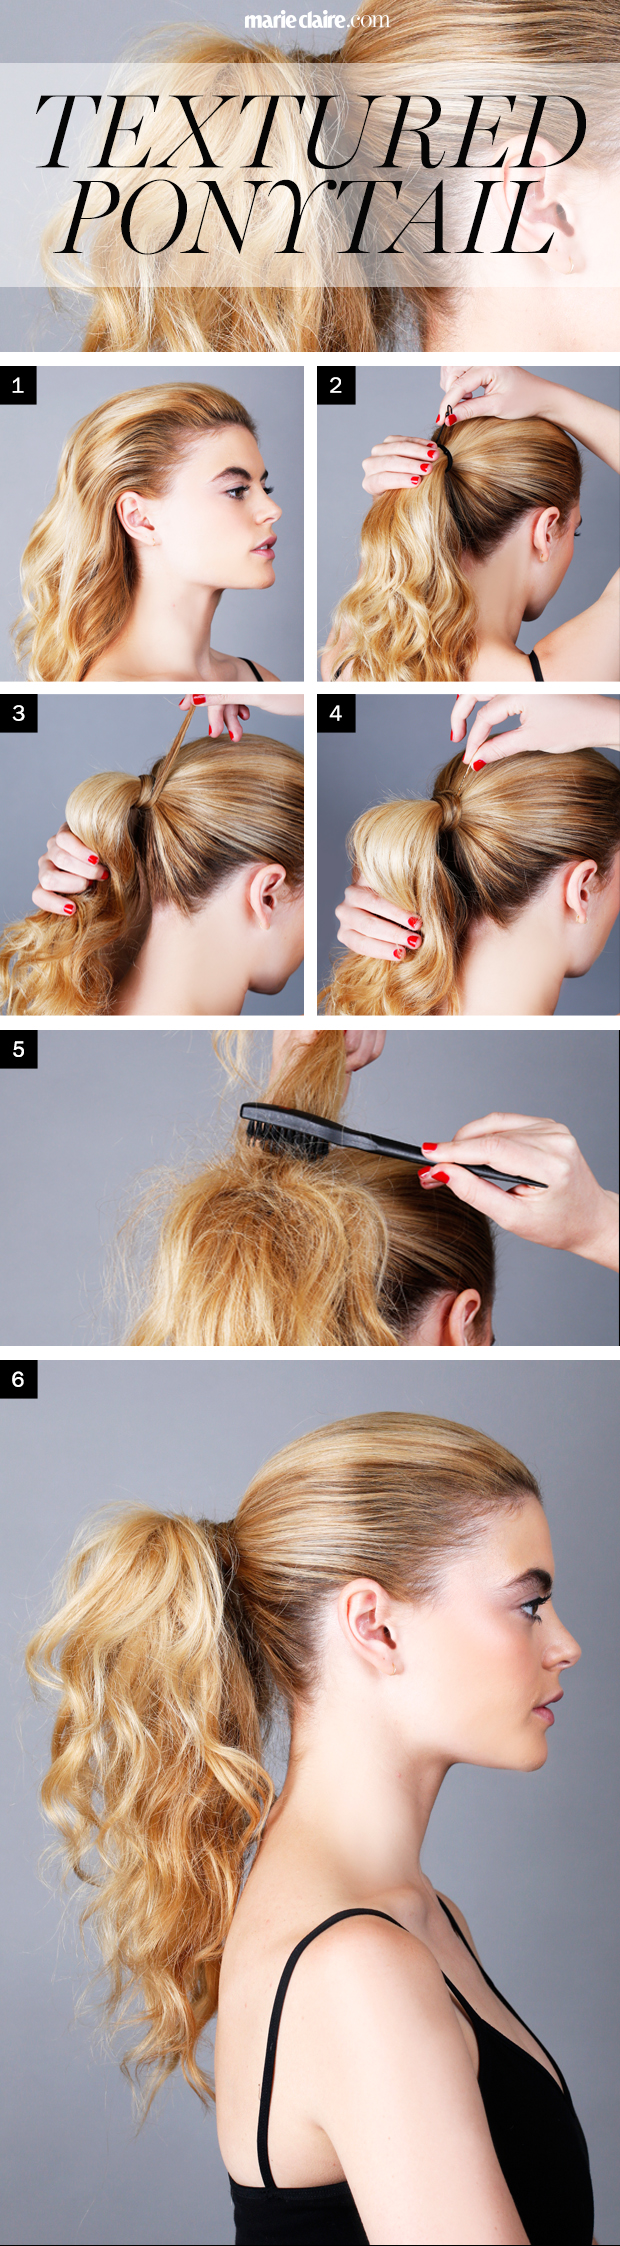 548337f897647_-_mc_hairtutorial_texturedponytail.jpg